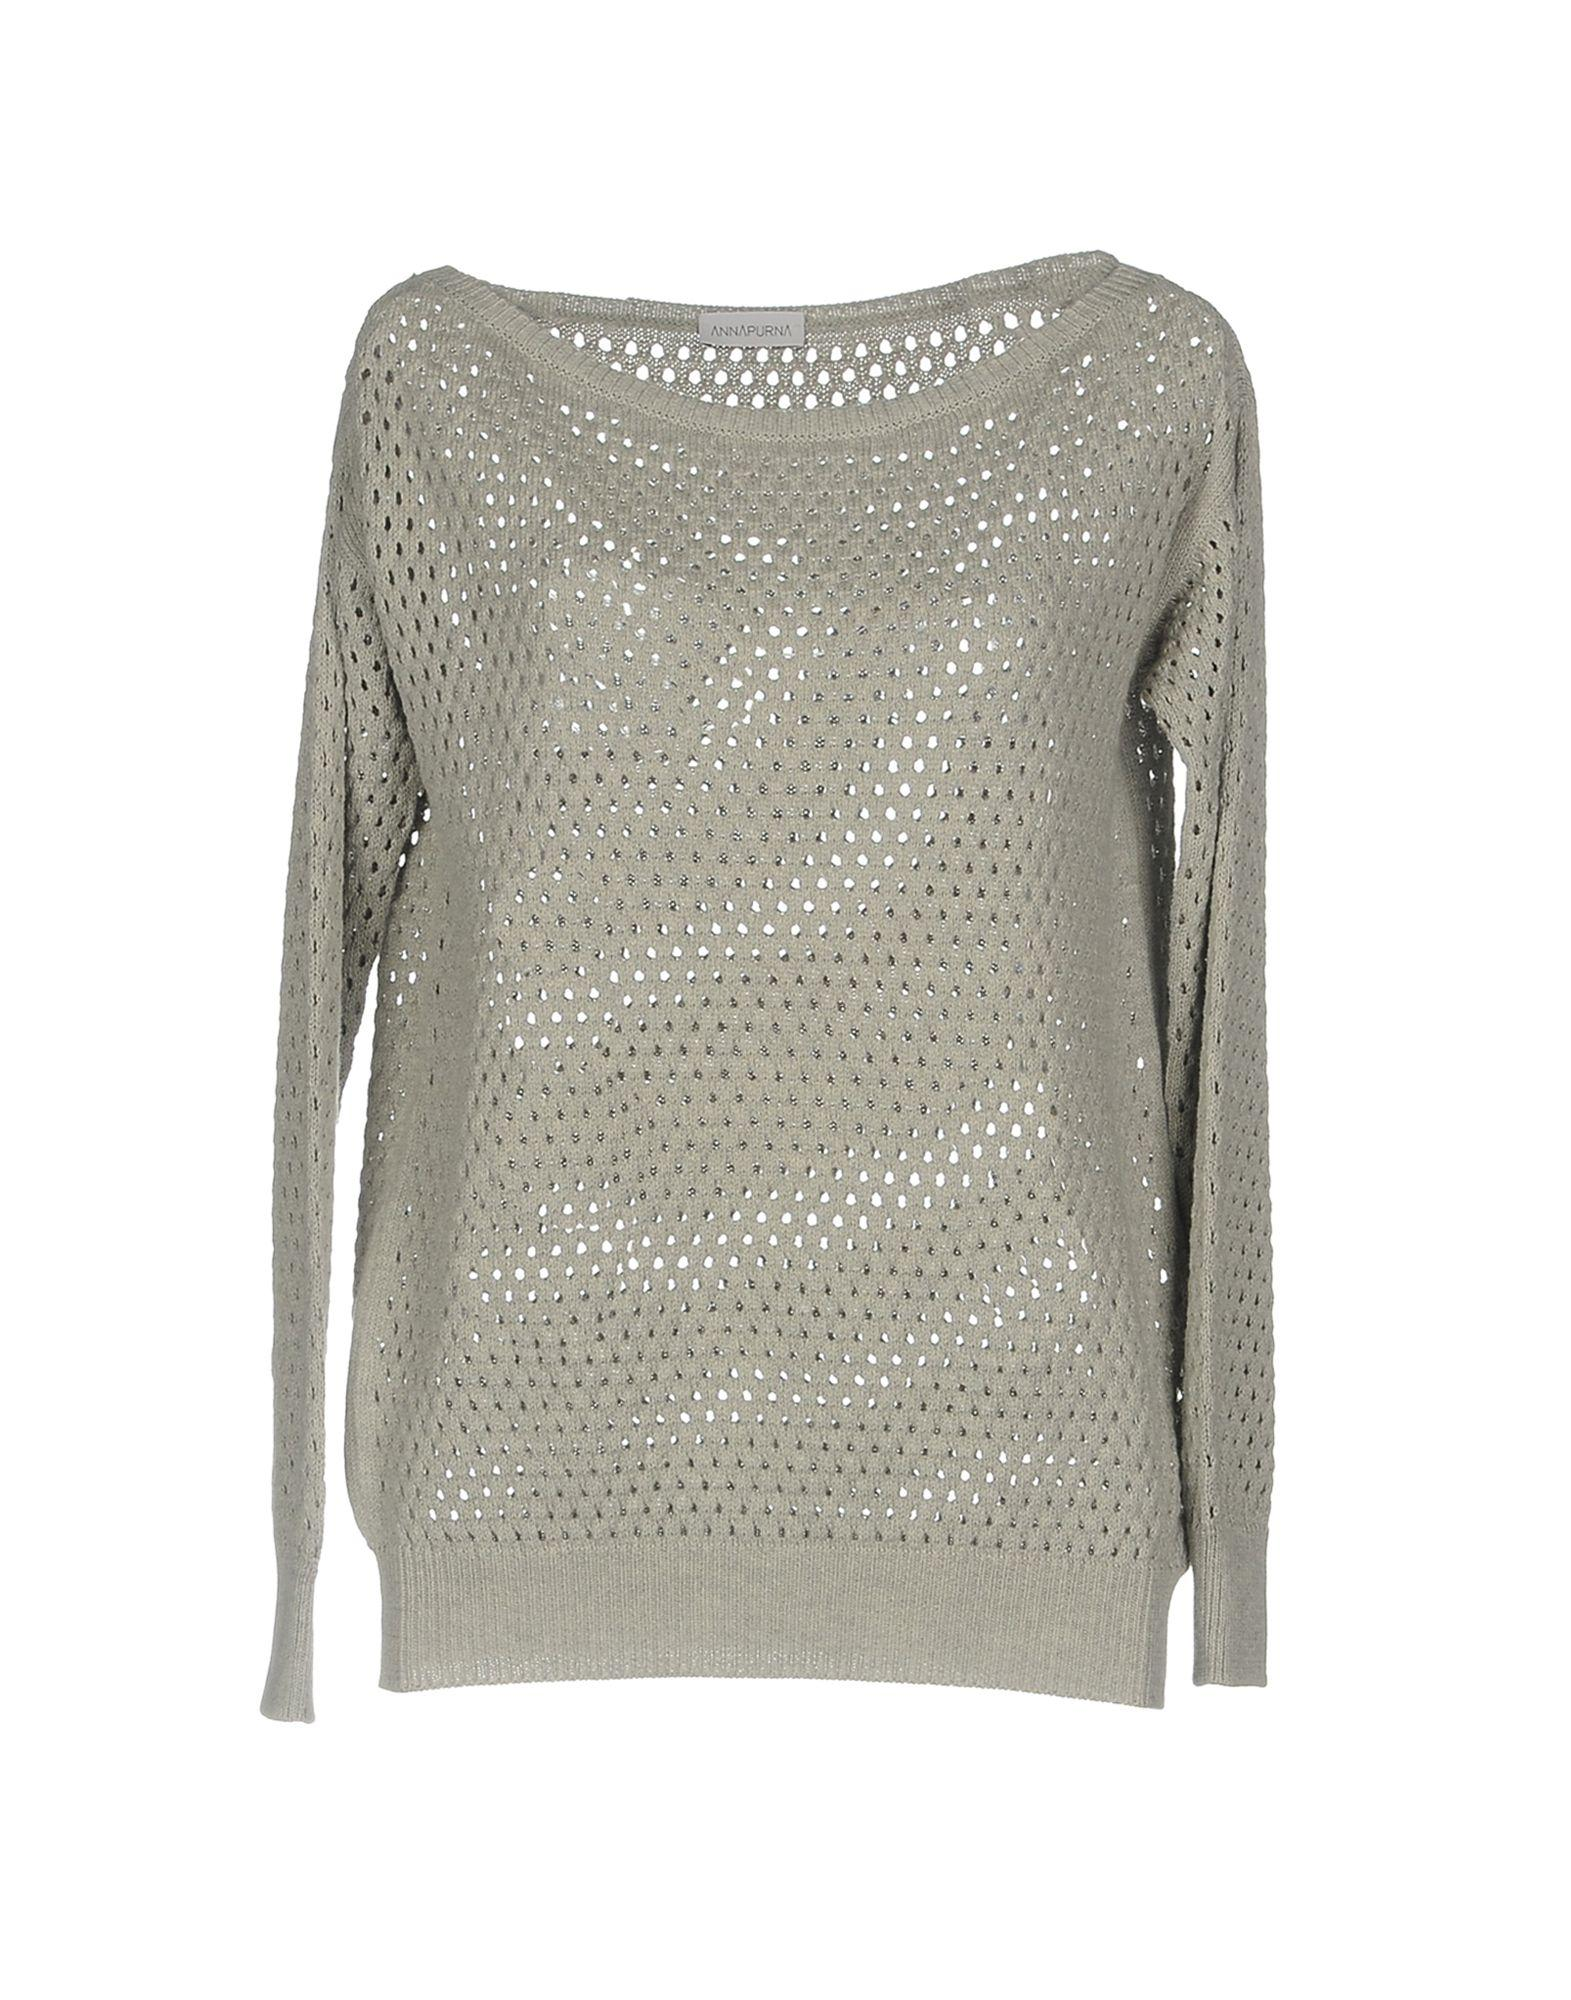 Annapurna Sweater In Light Grey